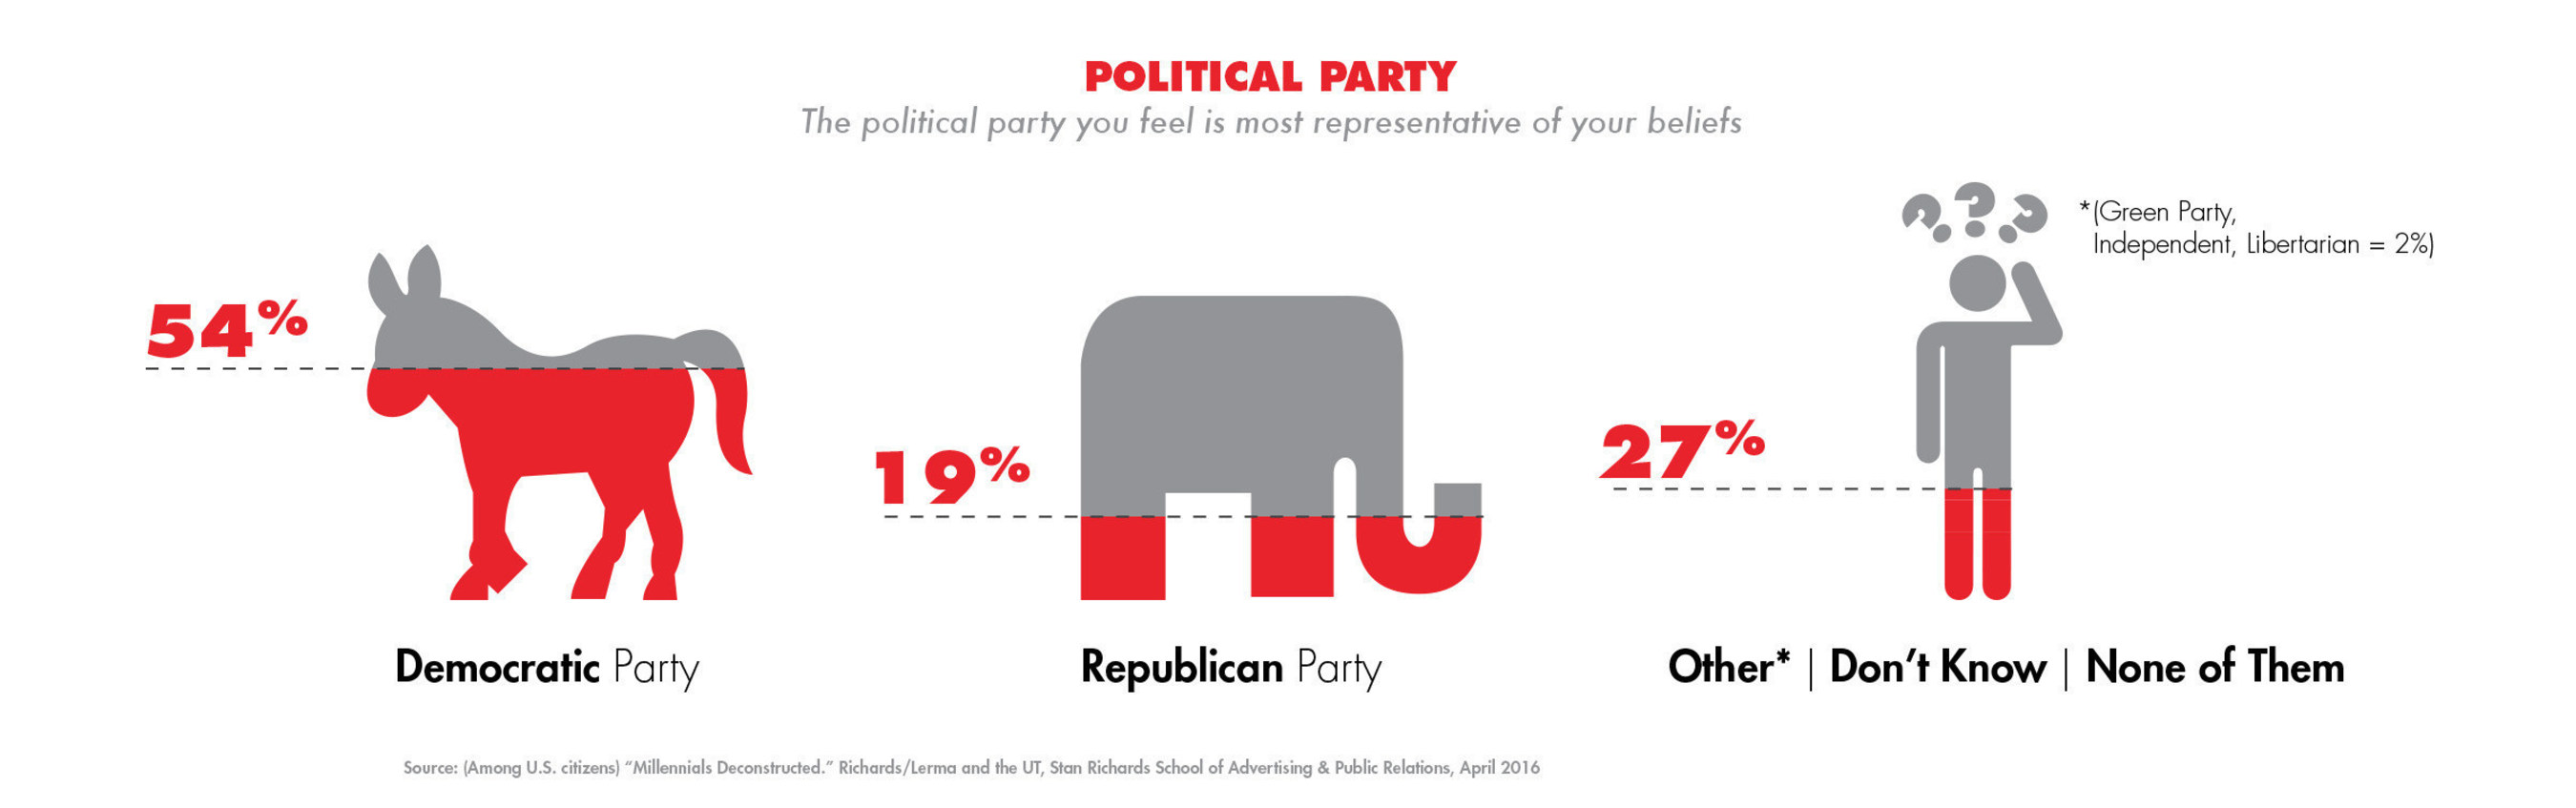 The political party you feel is most representative of your beliefs